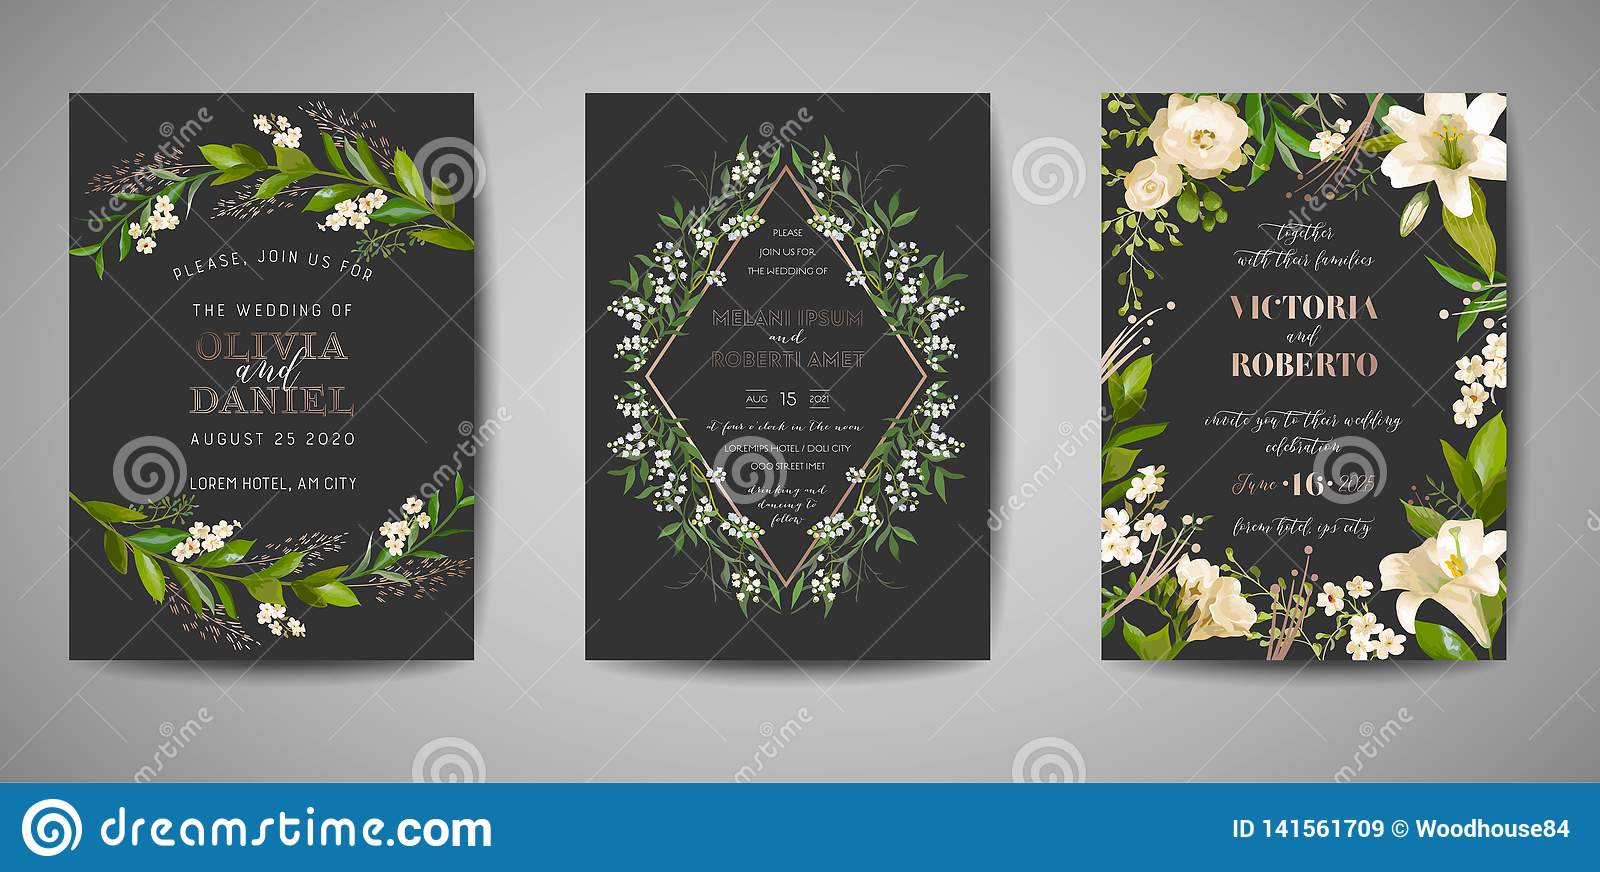 Set Of Wedding Invitation, Floral Invite, Thank You, Rsvp Rustic Card  Design With Gold Foil Decoration. Elegant Modern Template Stock Vector -  Illustration of gold, border: 141561709